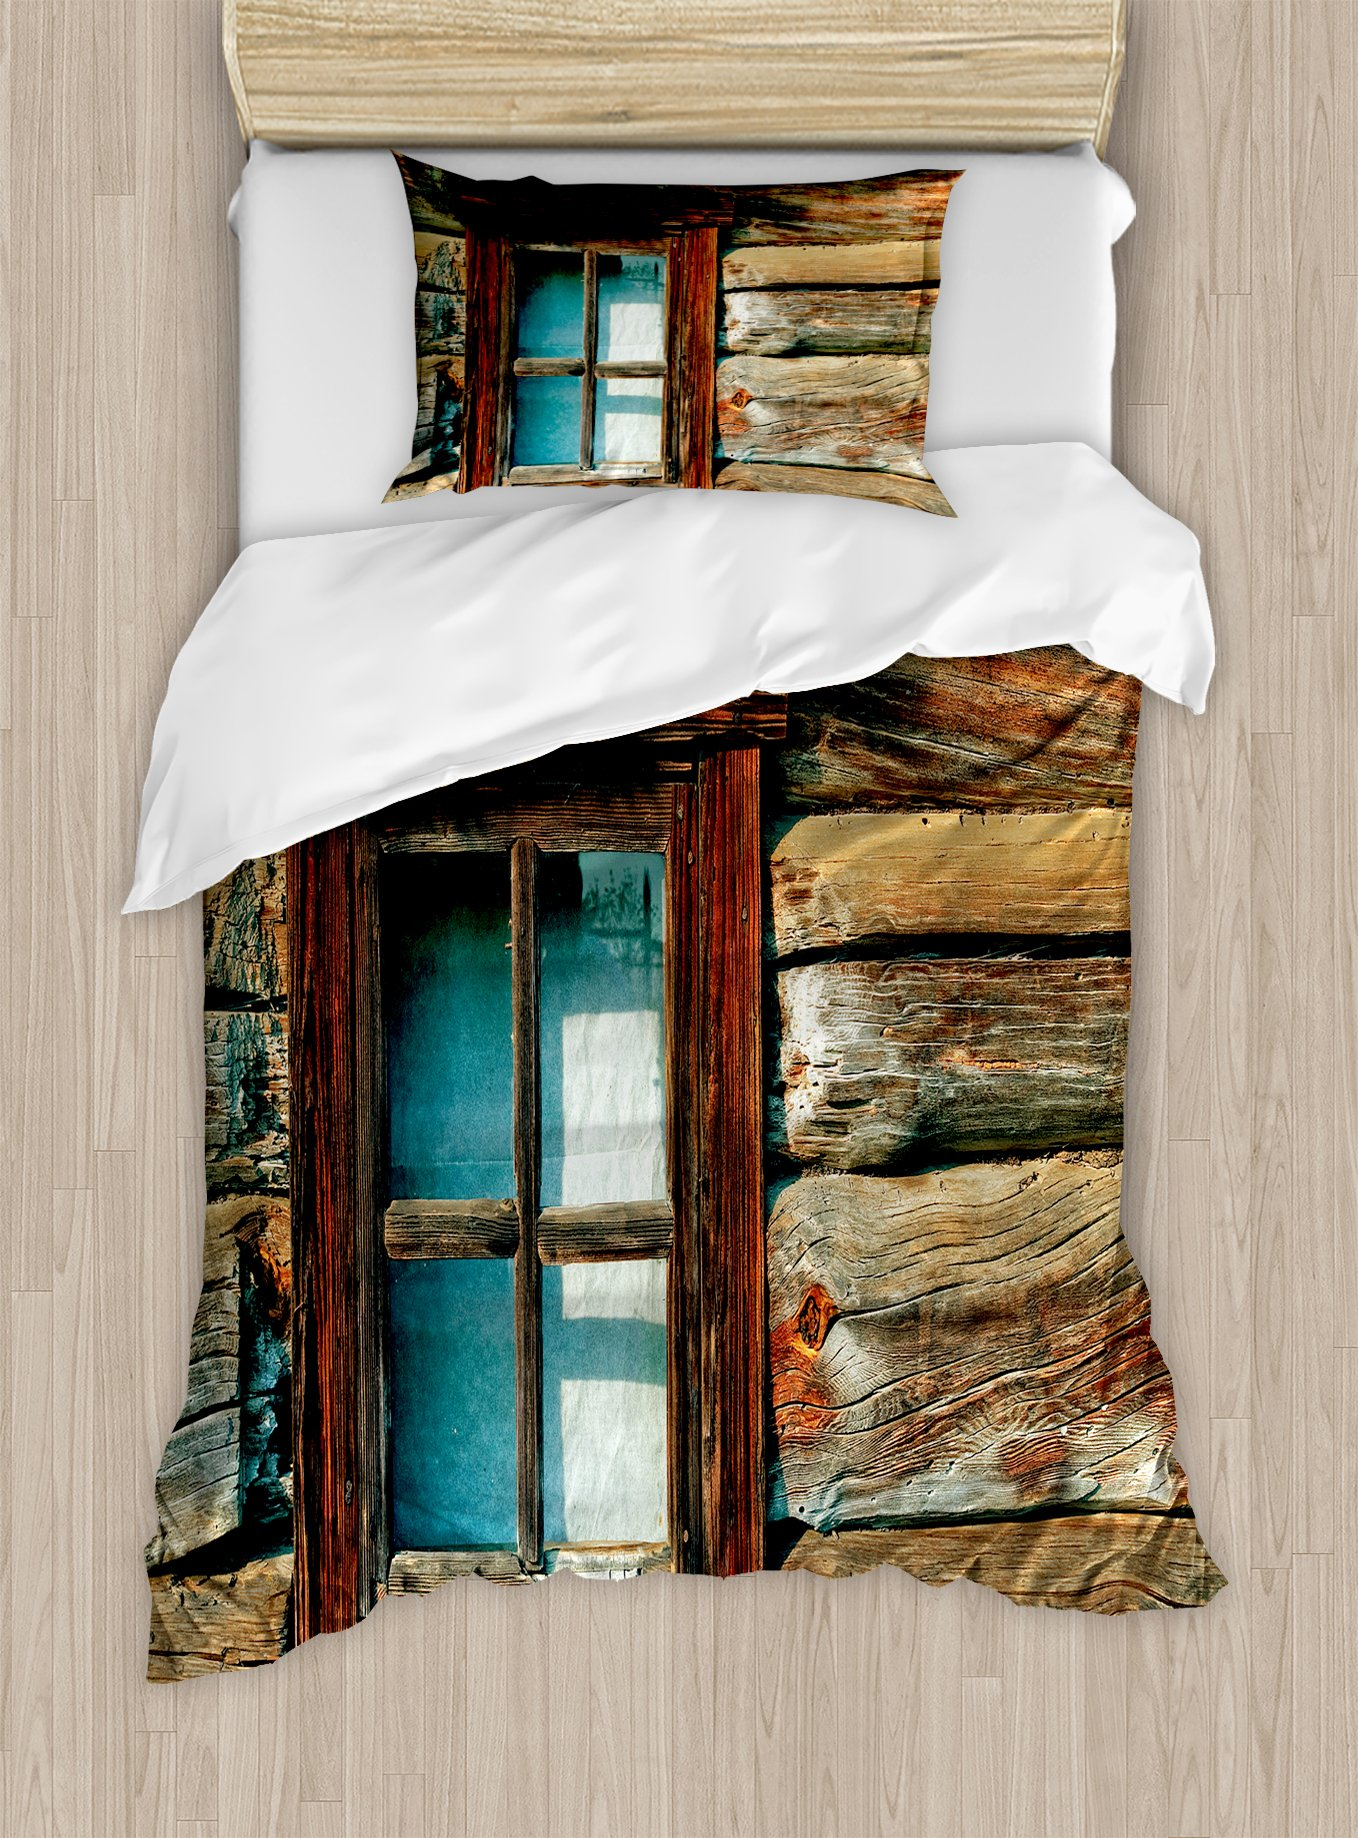 Ambesonne Scenery Duvet Cover Set Twin Size, Single Window with White Curtain on a Wooden Background Lumberjack House Photo, Decorative 2 Piece Bedding Set with 1 Pillow Sham, Brown and Blue